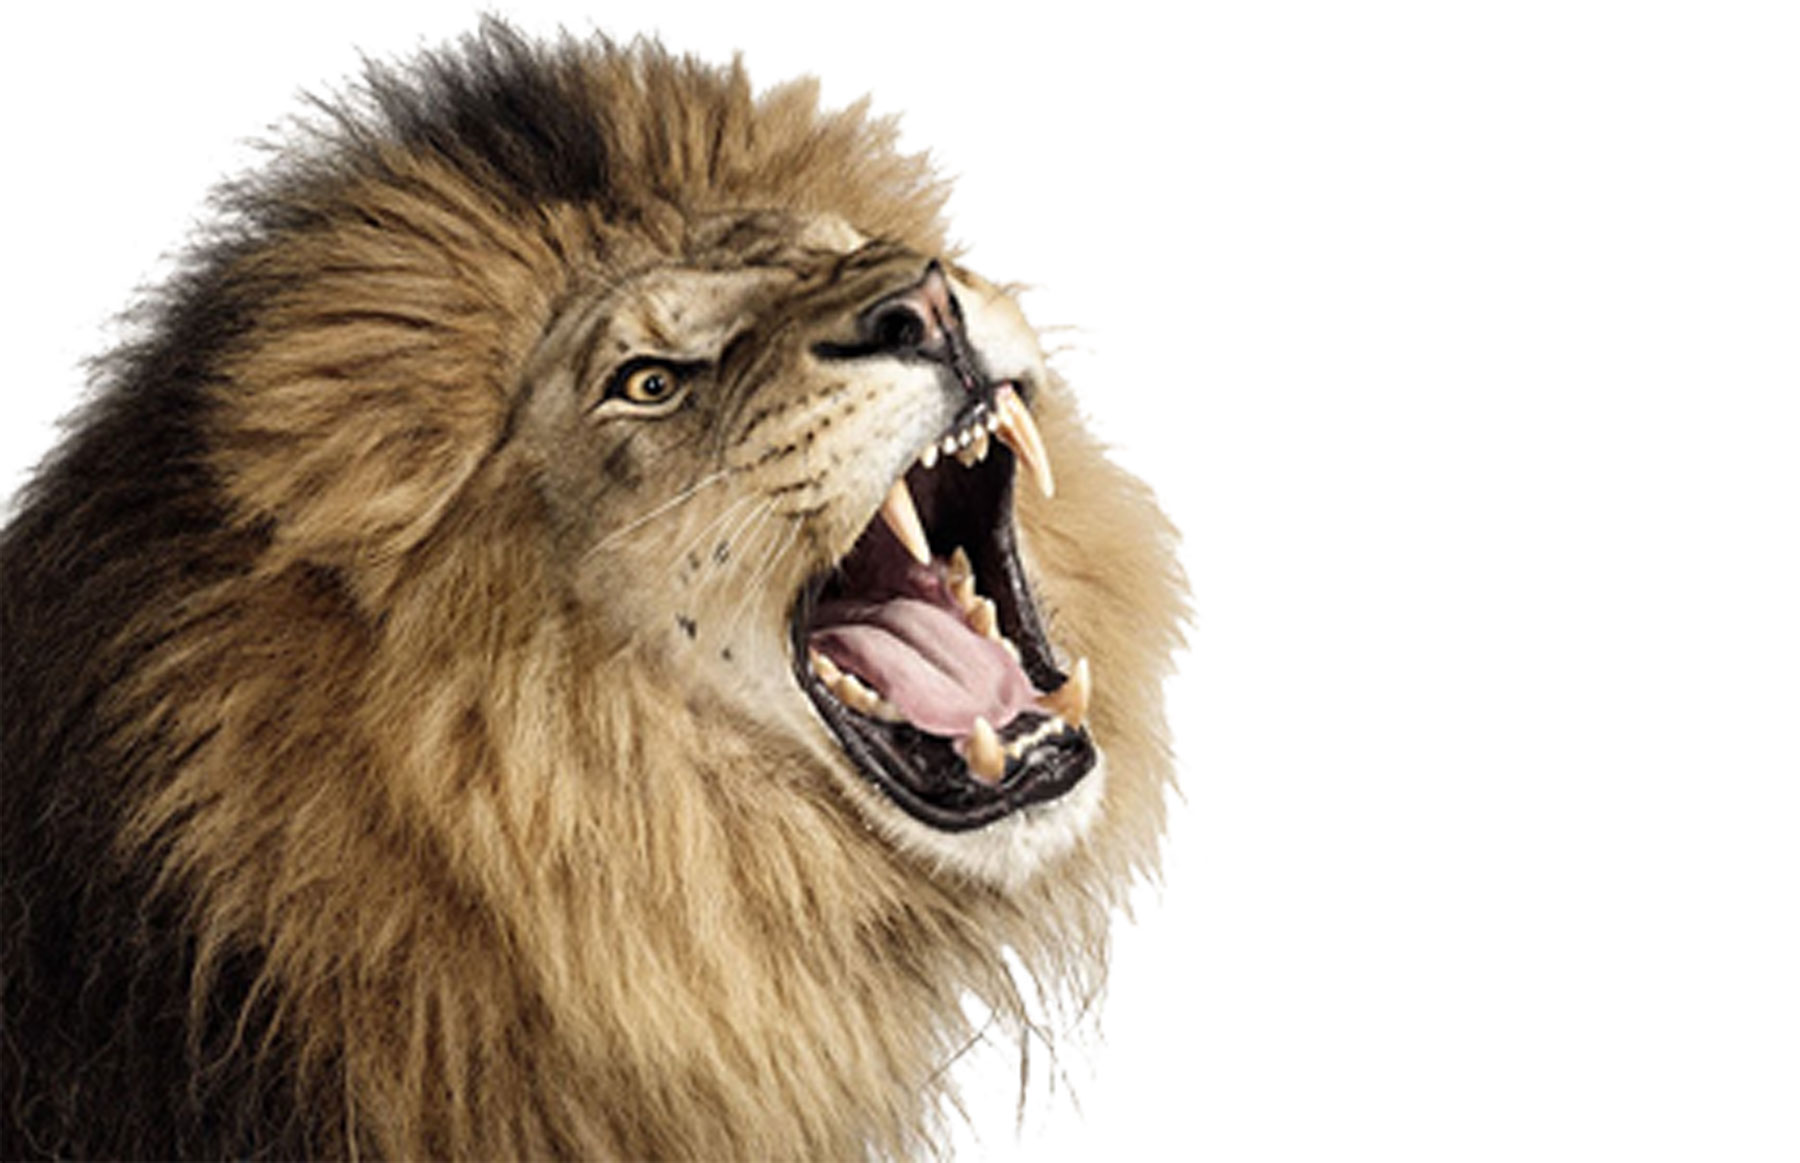 Title : Images of roaring lion - Mountain Lion PNG HD